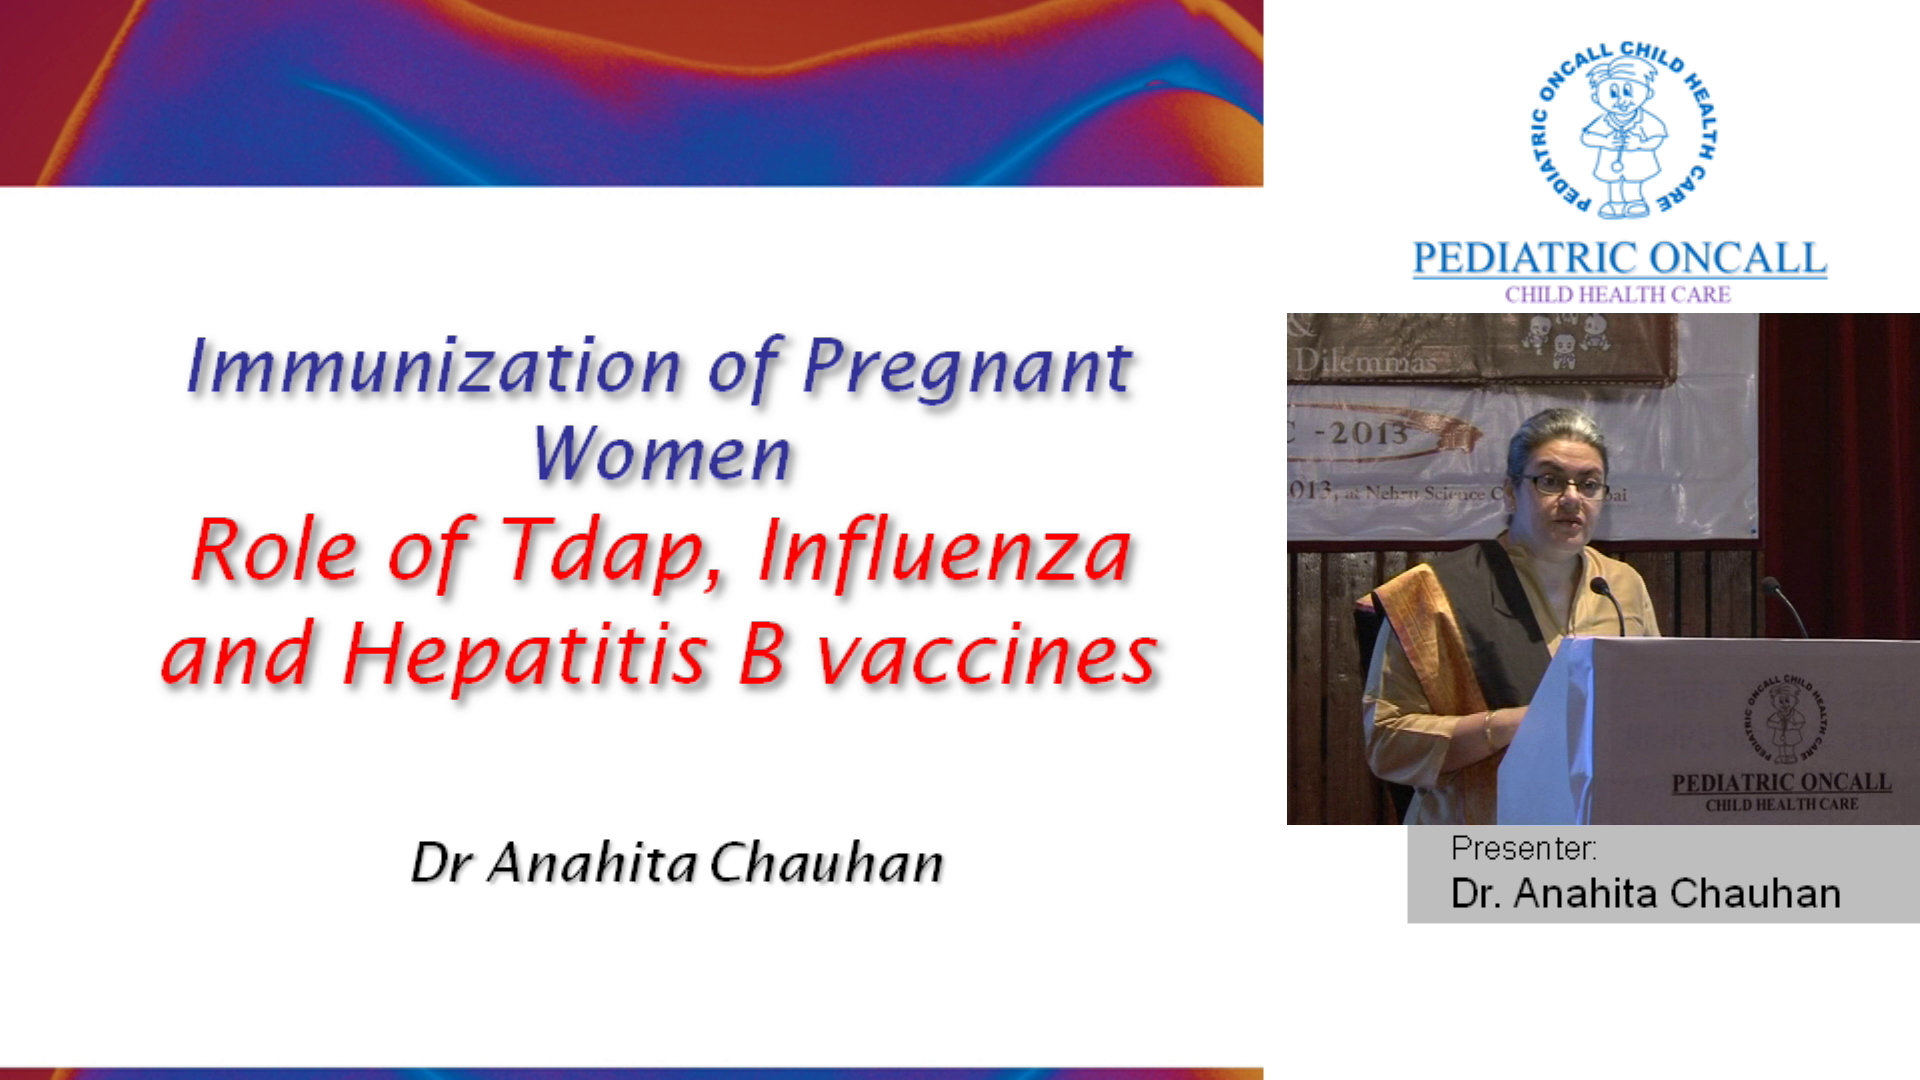 Immunization of Pregnant Women